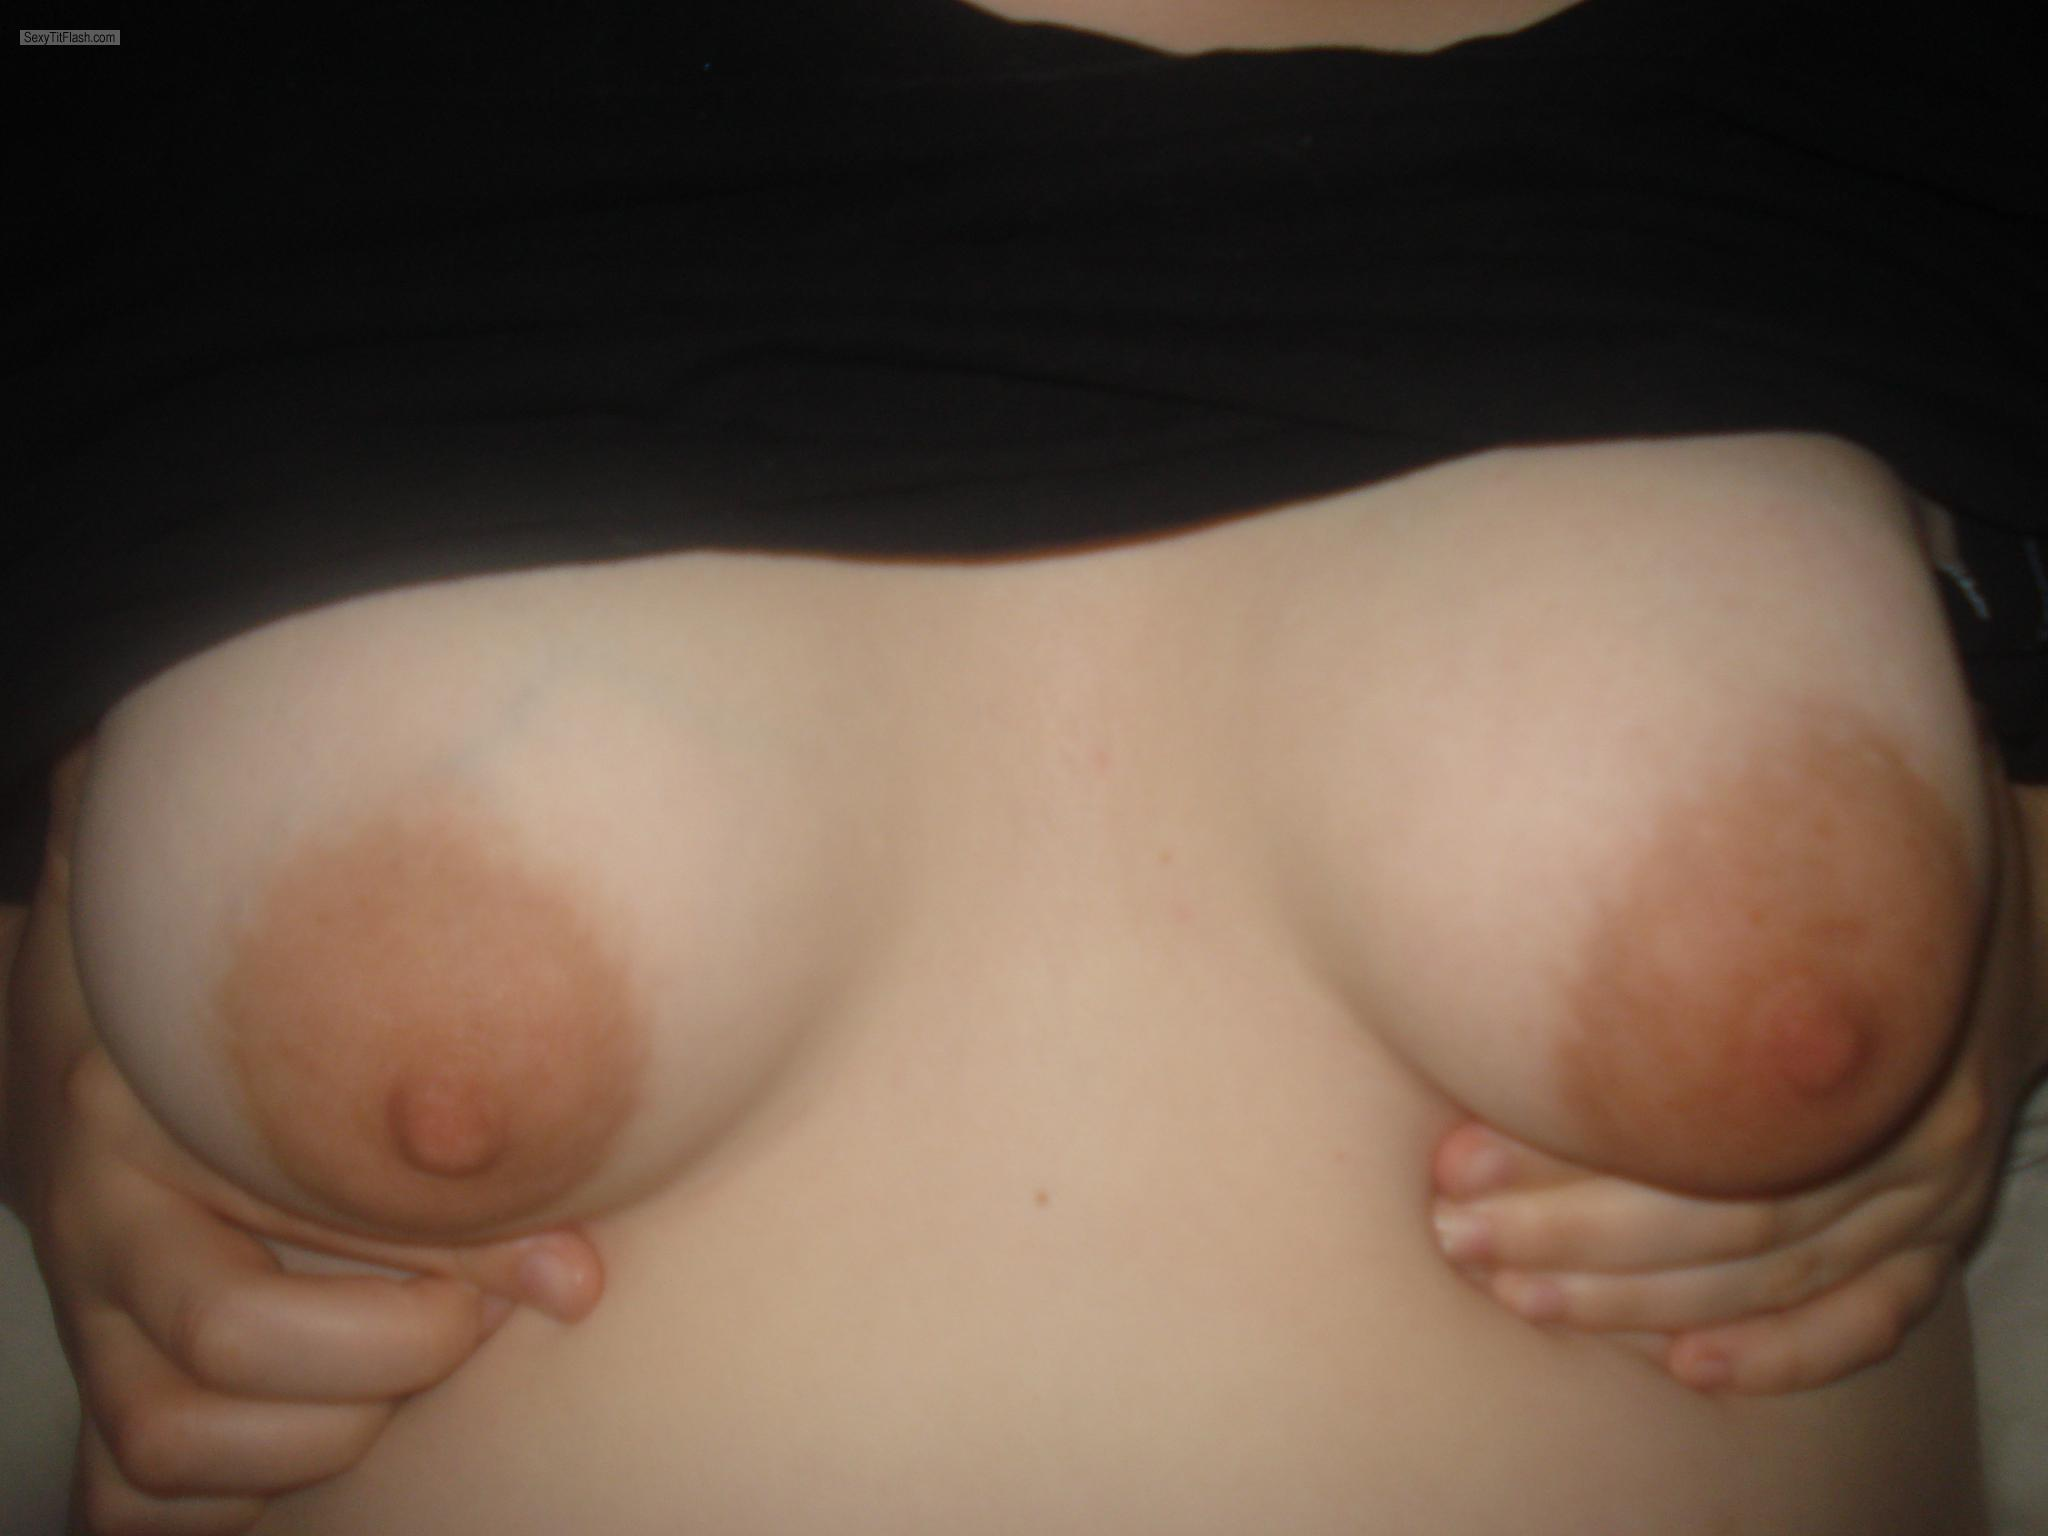 Tit Flash: My Small Tits - NEW YORK WILD from United States